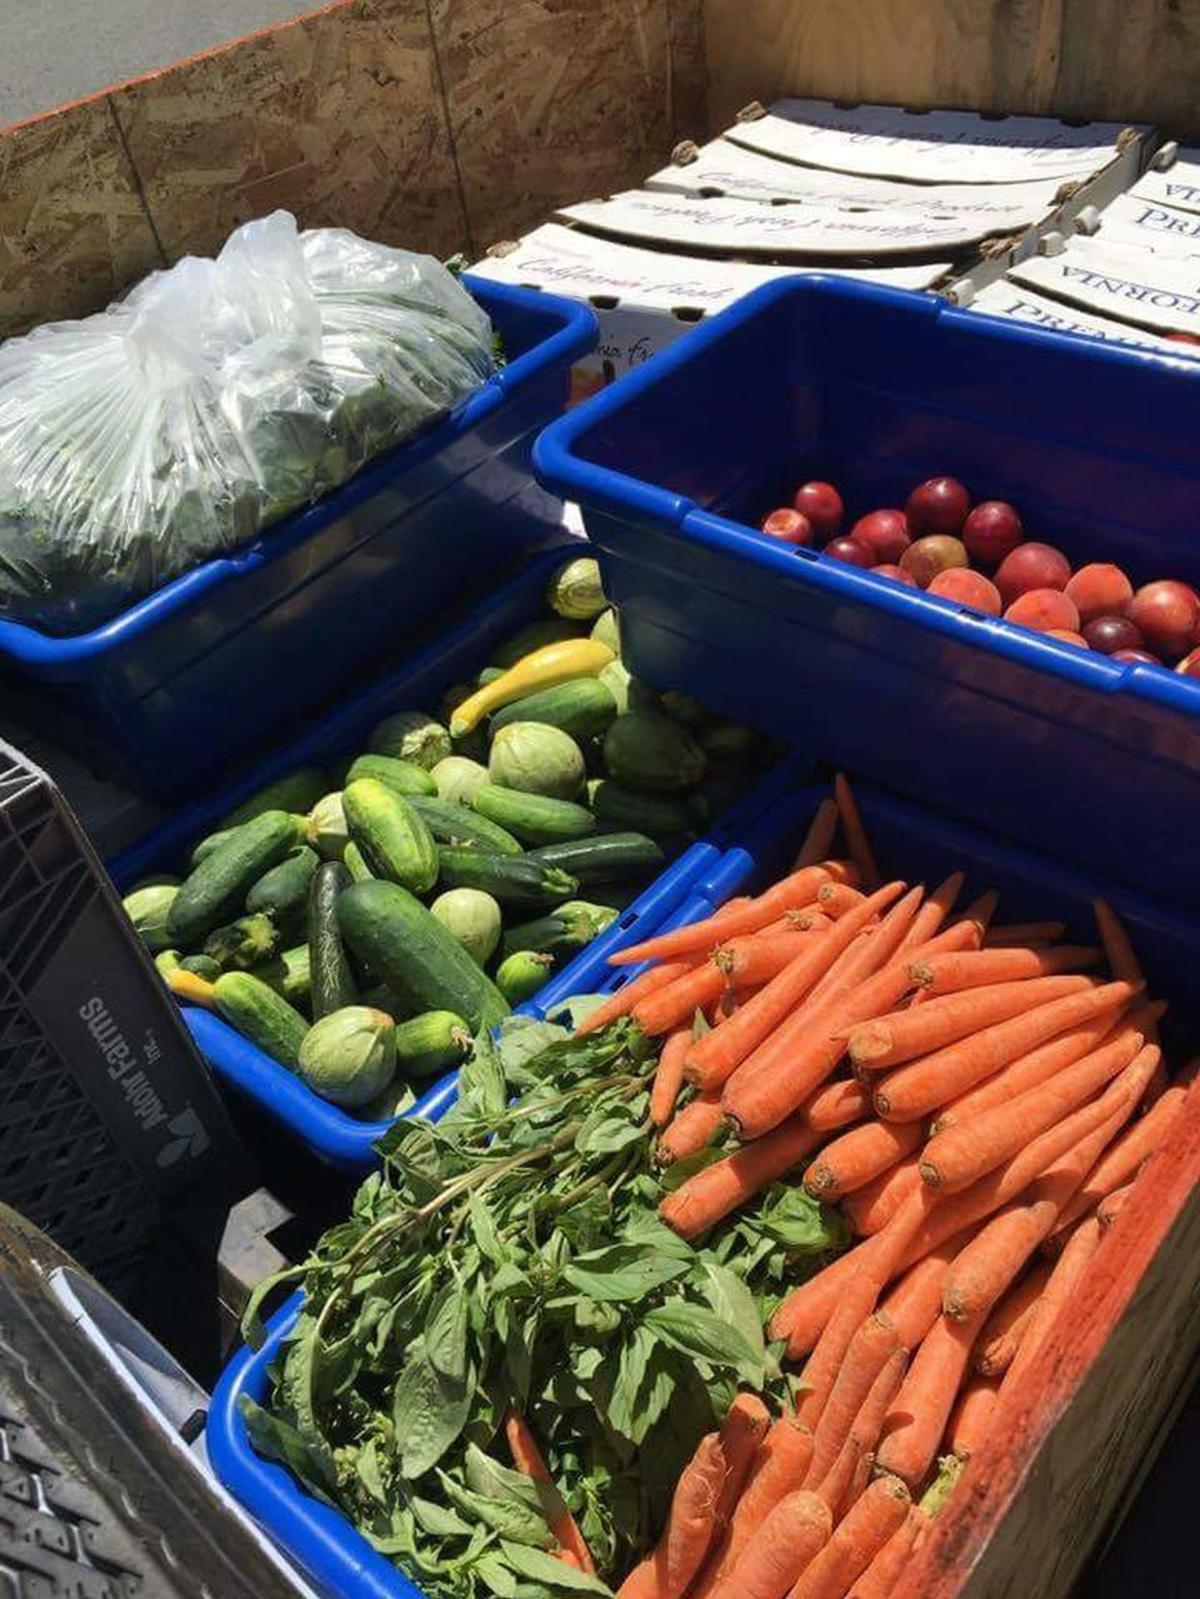 Produce collected by Ken Hawes at Farmers Market